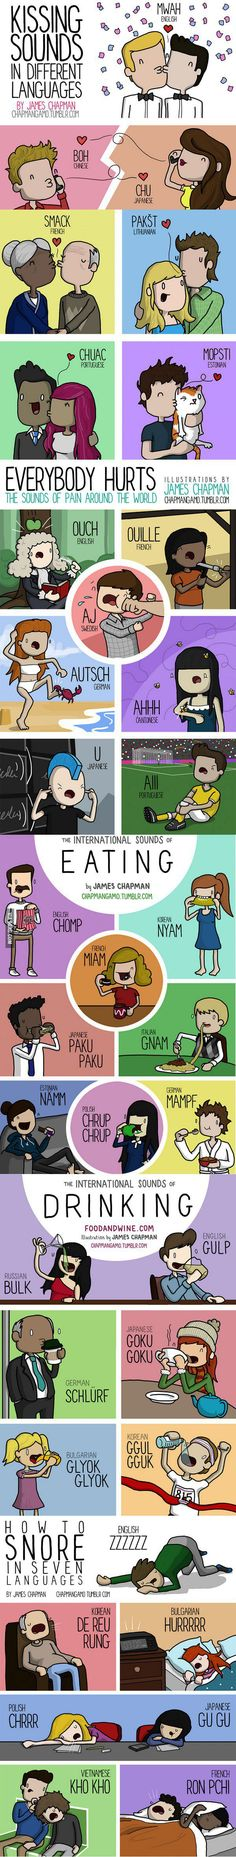 And now, linguistics. | How Kissing, Snoring, Eating and Other Things Sound In Different Languages